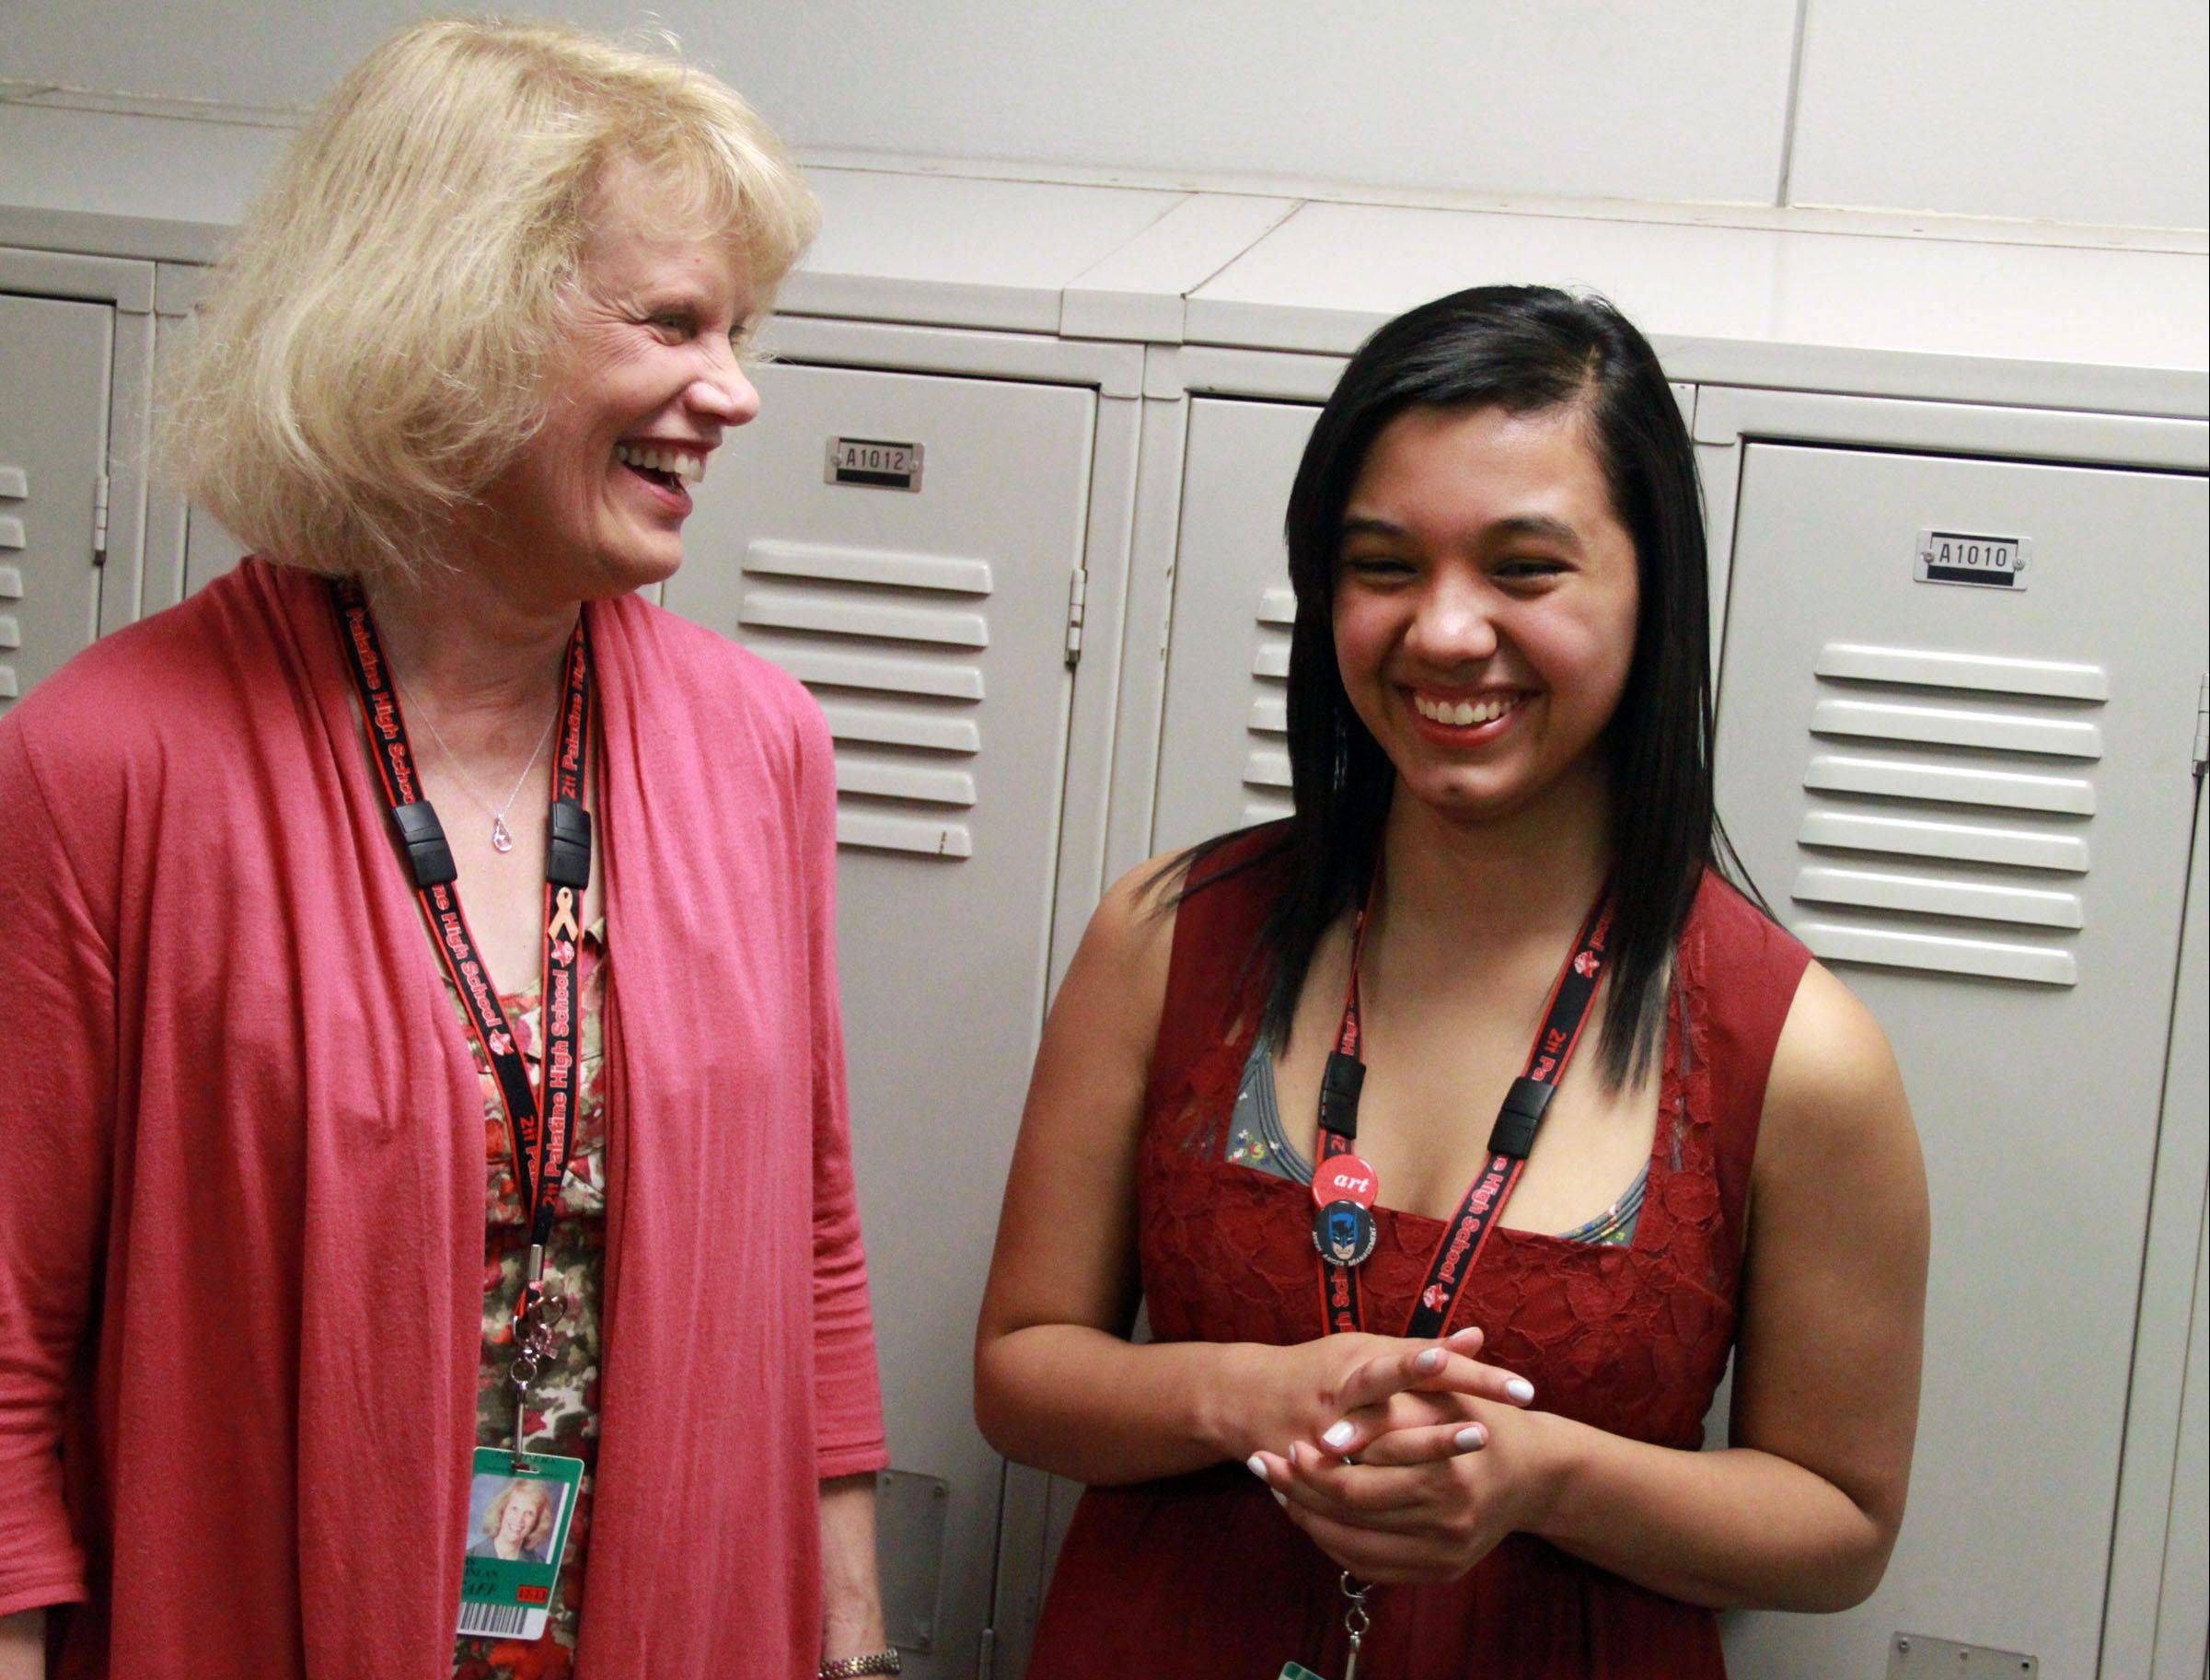 Retiring Palatine High School counselor Susan Quinlan has seen plenty of success stories in her years coordinating Project Excel, an innovating program to help minority students. Graduating senior Rebecca Alanis credits the program with getting her into college. With the help of a $50,000 scholarship, Rebecca will study architecture at Kent State University.